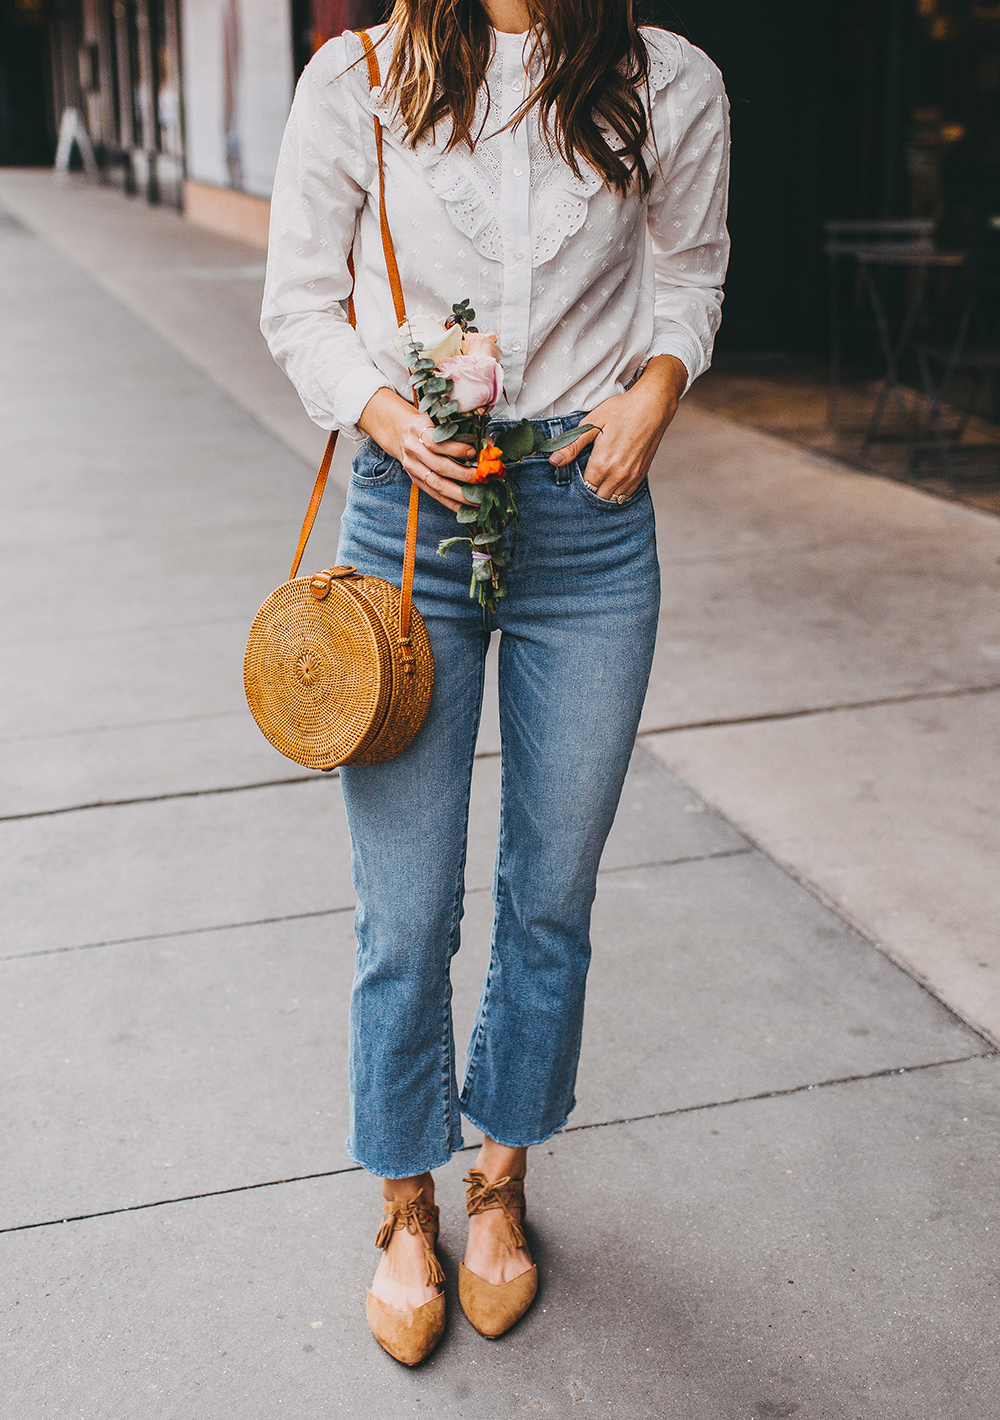 livvyland-blog-olivia-watson-austin-texas-fashion-style-blogger-sezane-white-eyelet-blouse-kick-flare-jeans-simple-spring-outfit-2